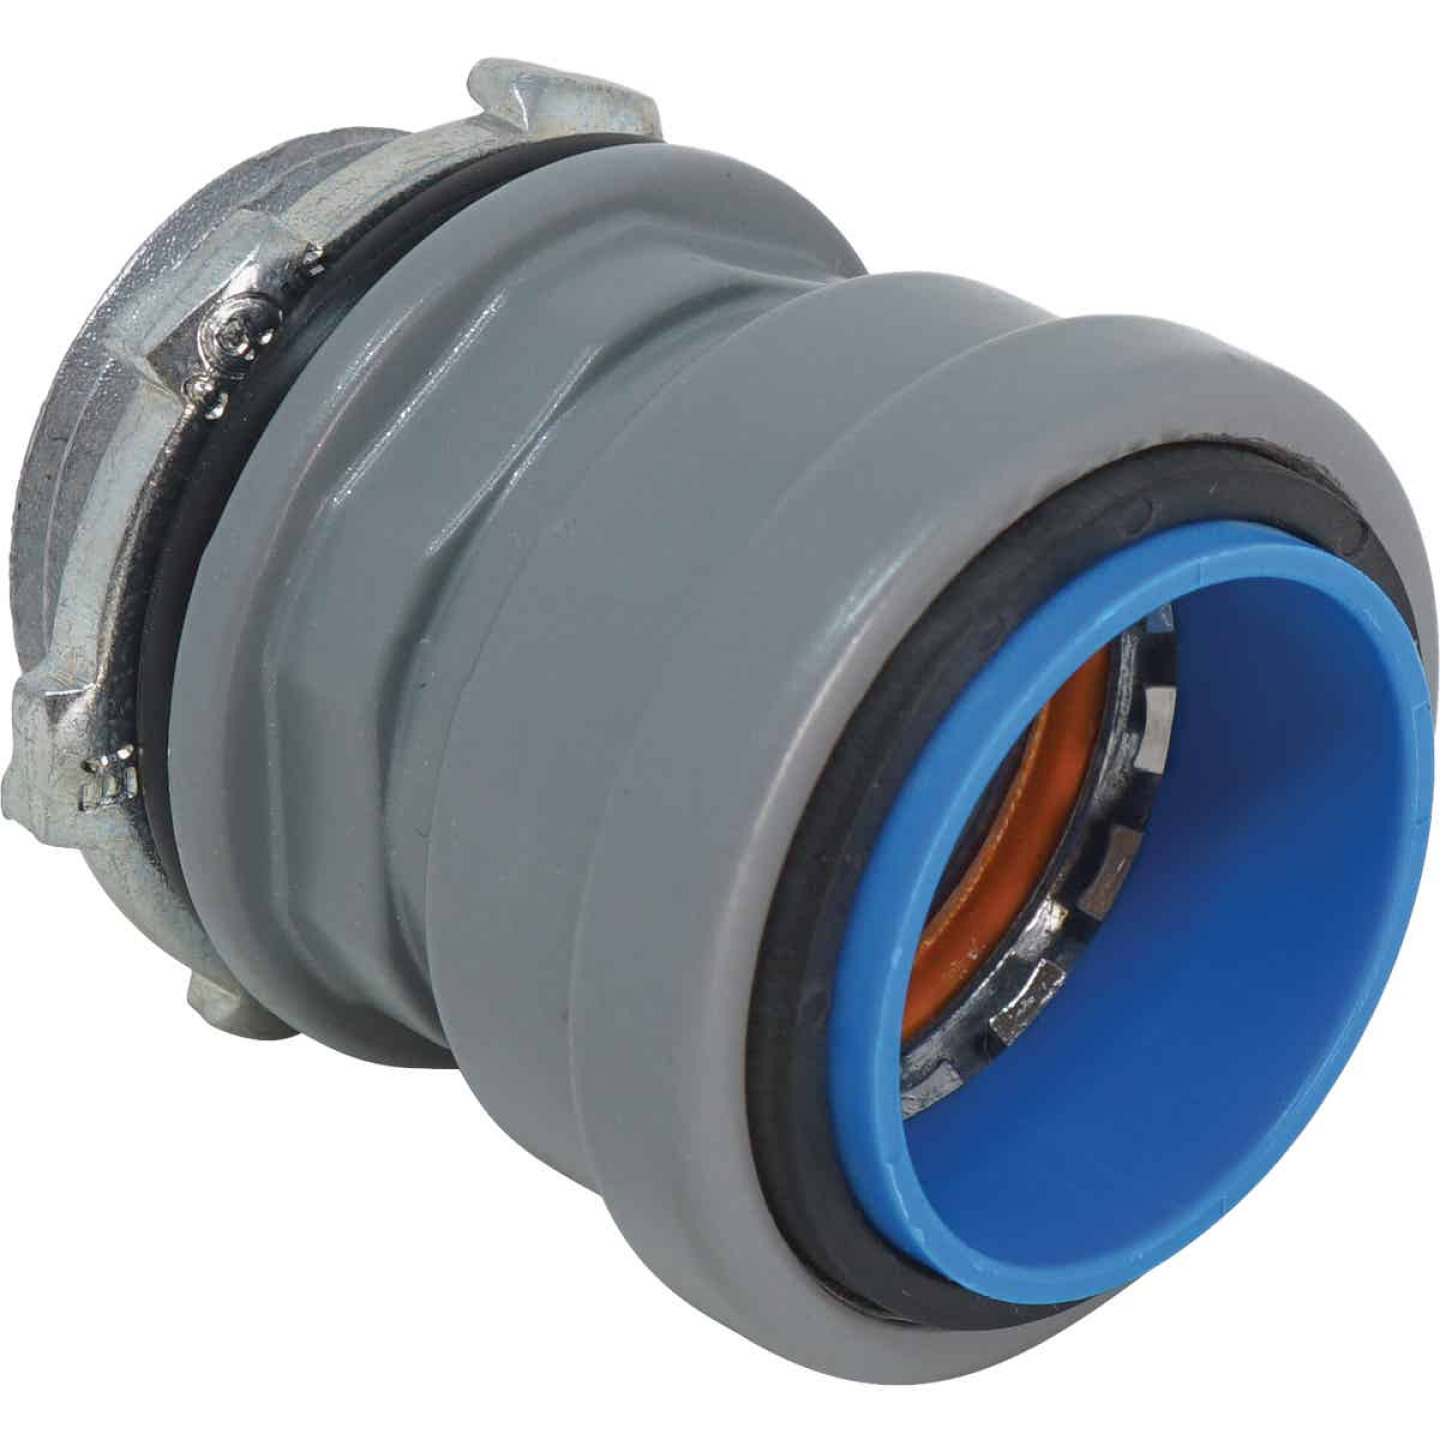 Southwire SimPush 1/2 In. Liquid Tight Metallic Push-To-Install Box Connector Image 1